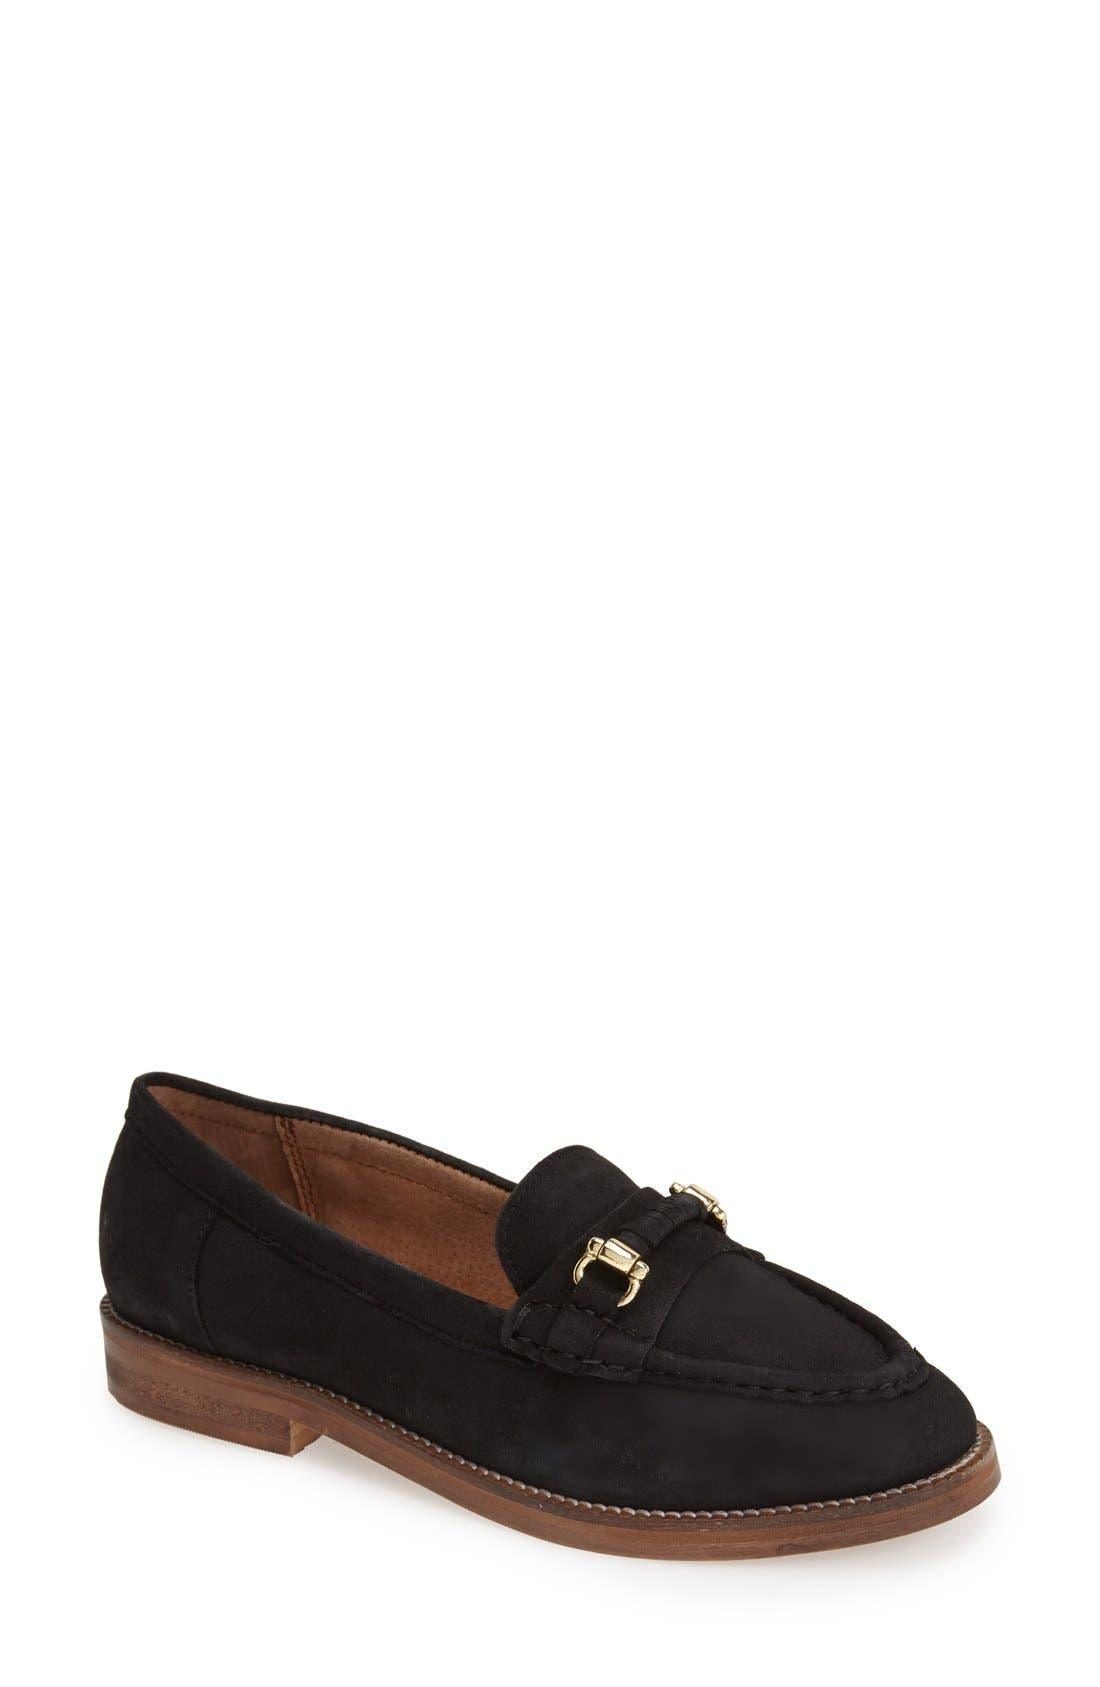 Topshop 'Karma' Suede Horsebit Loafer (Women)